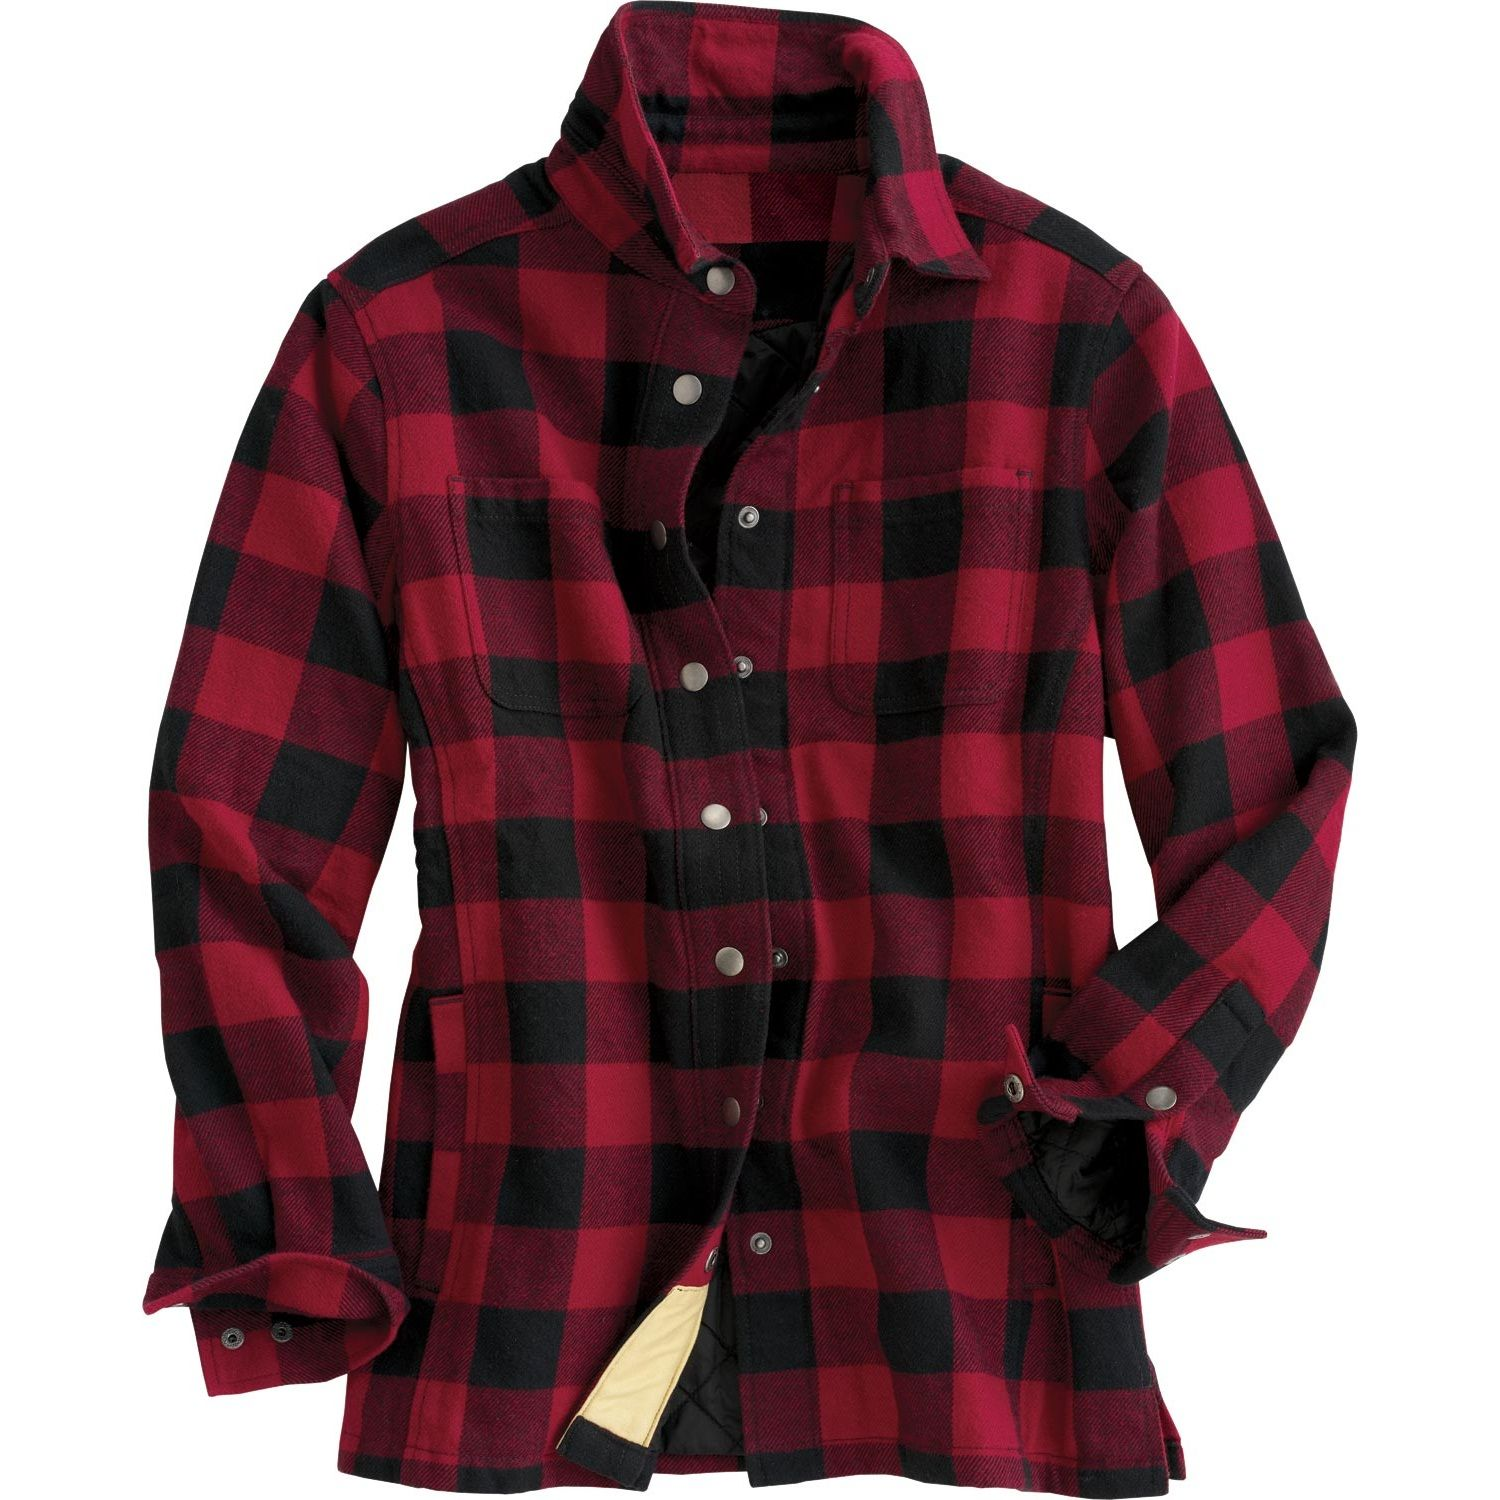 Women's Flapjack Flannel Shirt Jac - Duluth Trading (Red and Black Plaid,  Size Extra Small) - The Flapjack Shirt Jac Blends Fuzzy-soft Flannel With A Cozy